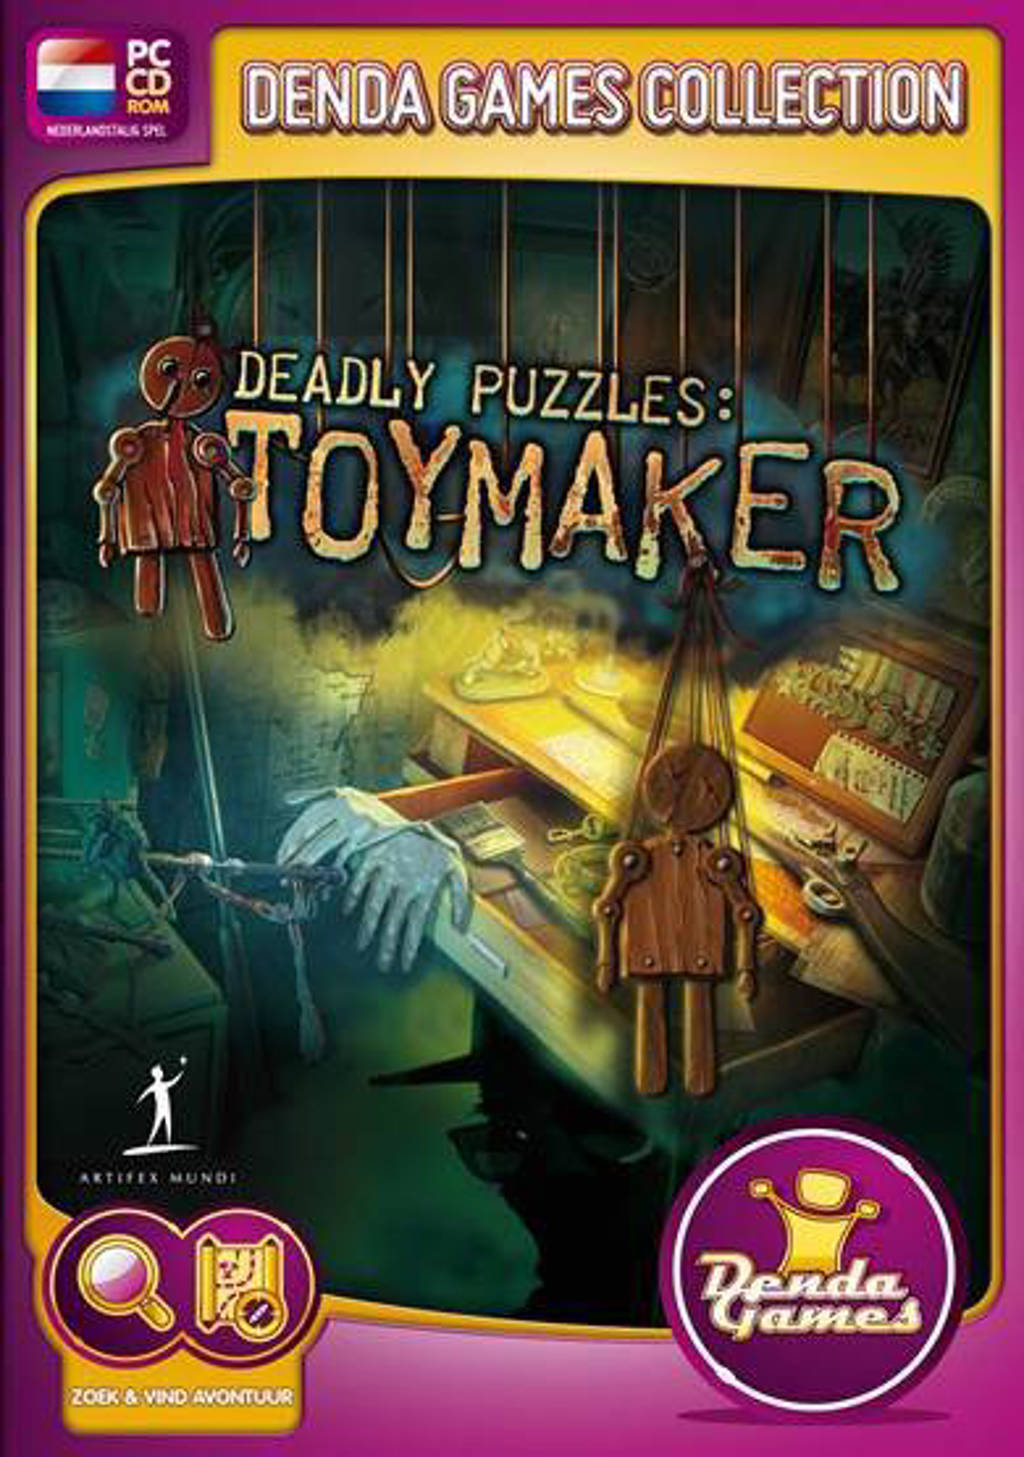 Deadly puzzles - Toymaker (PC)